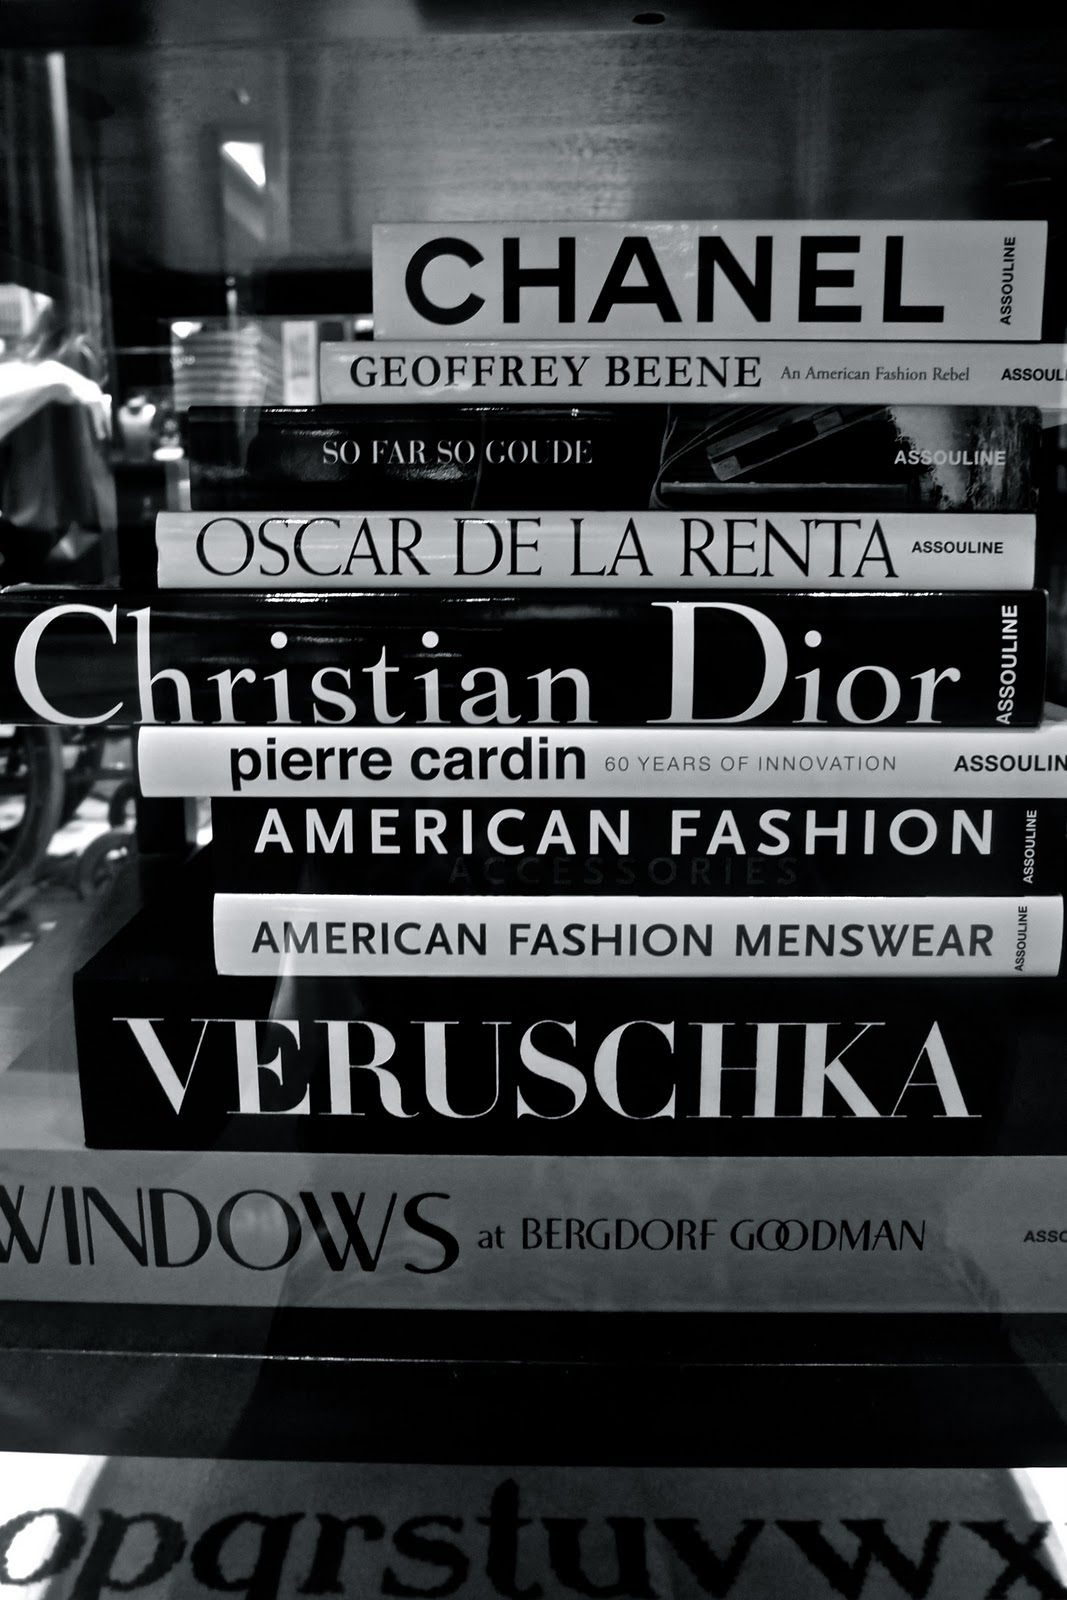 Fashion + Books = Inspiration